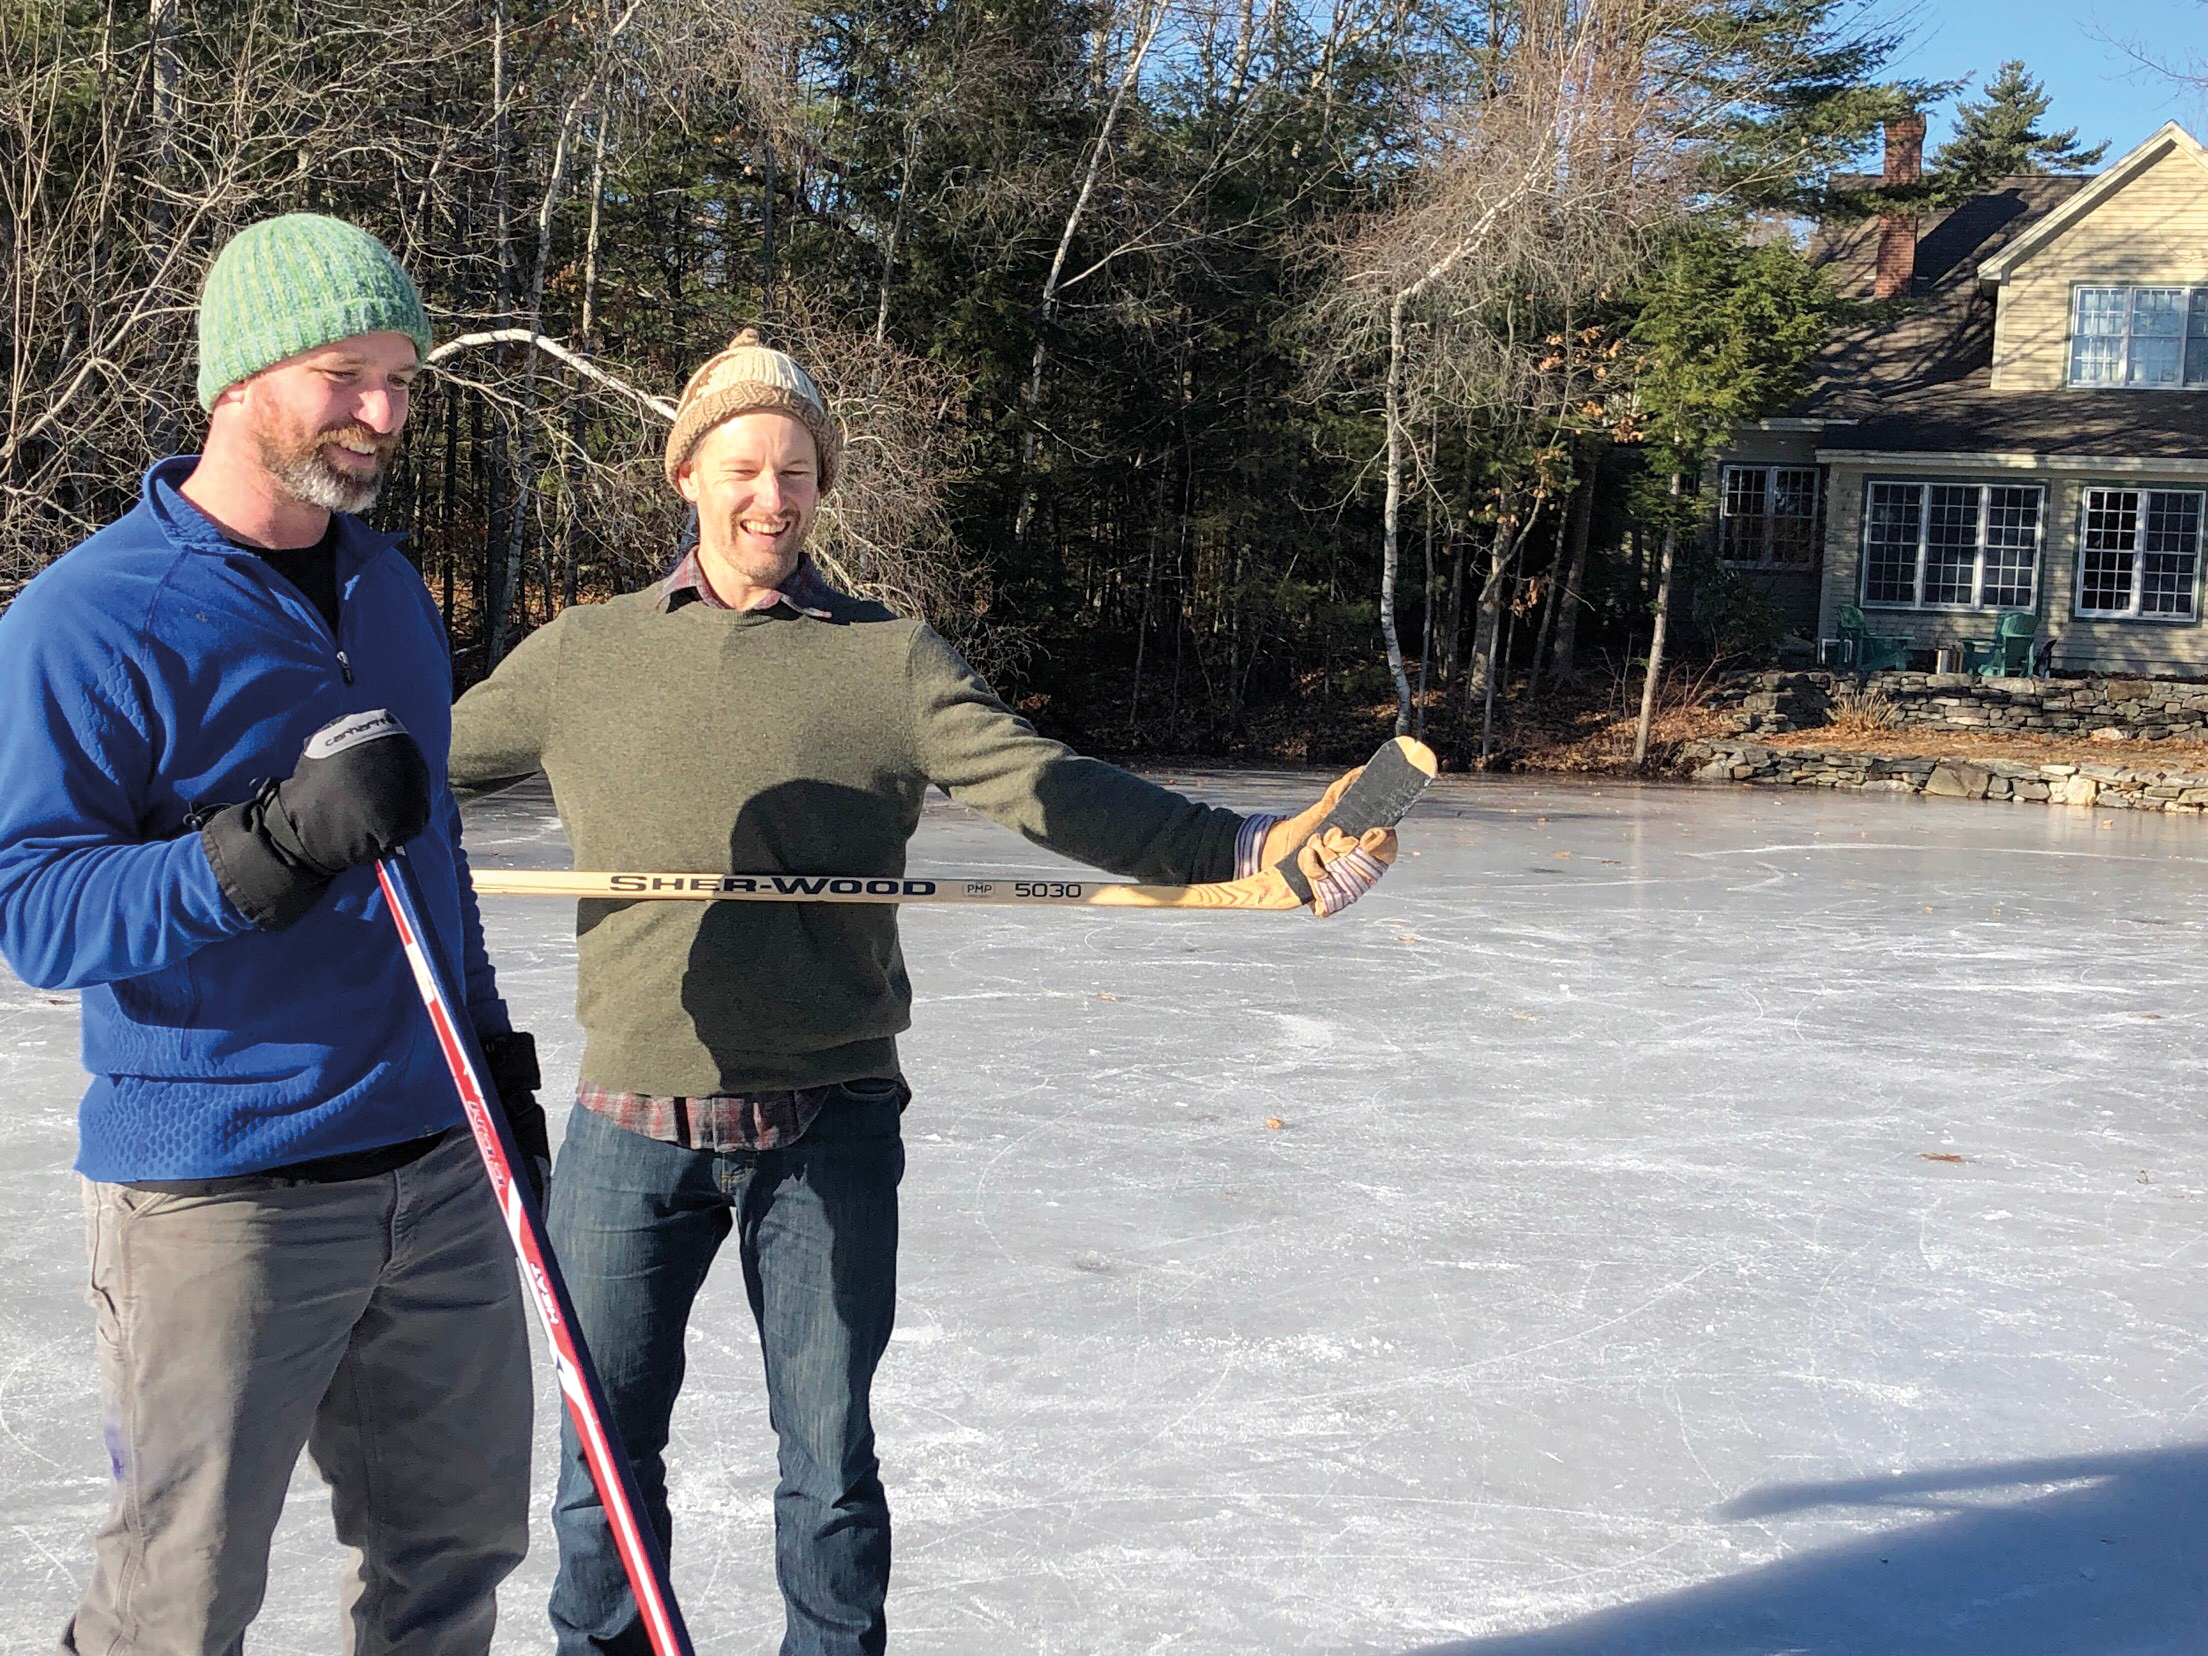 Robert Cushman '99 bumped into Jake Keeler '99 playing pond hockey in Portland, Maine.